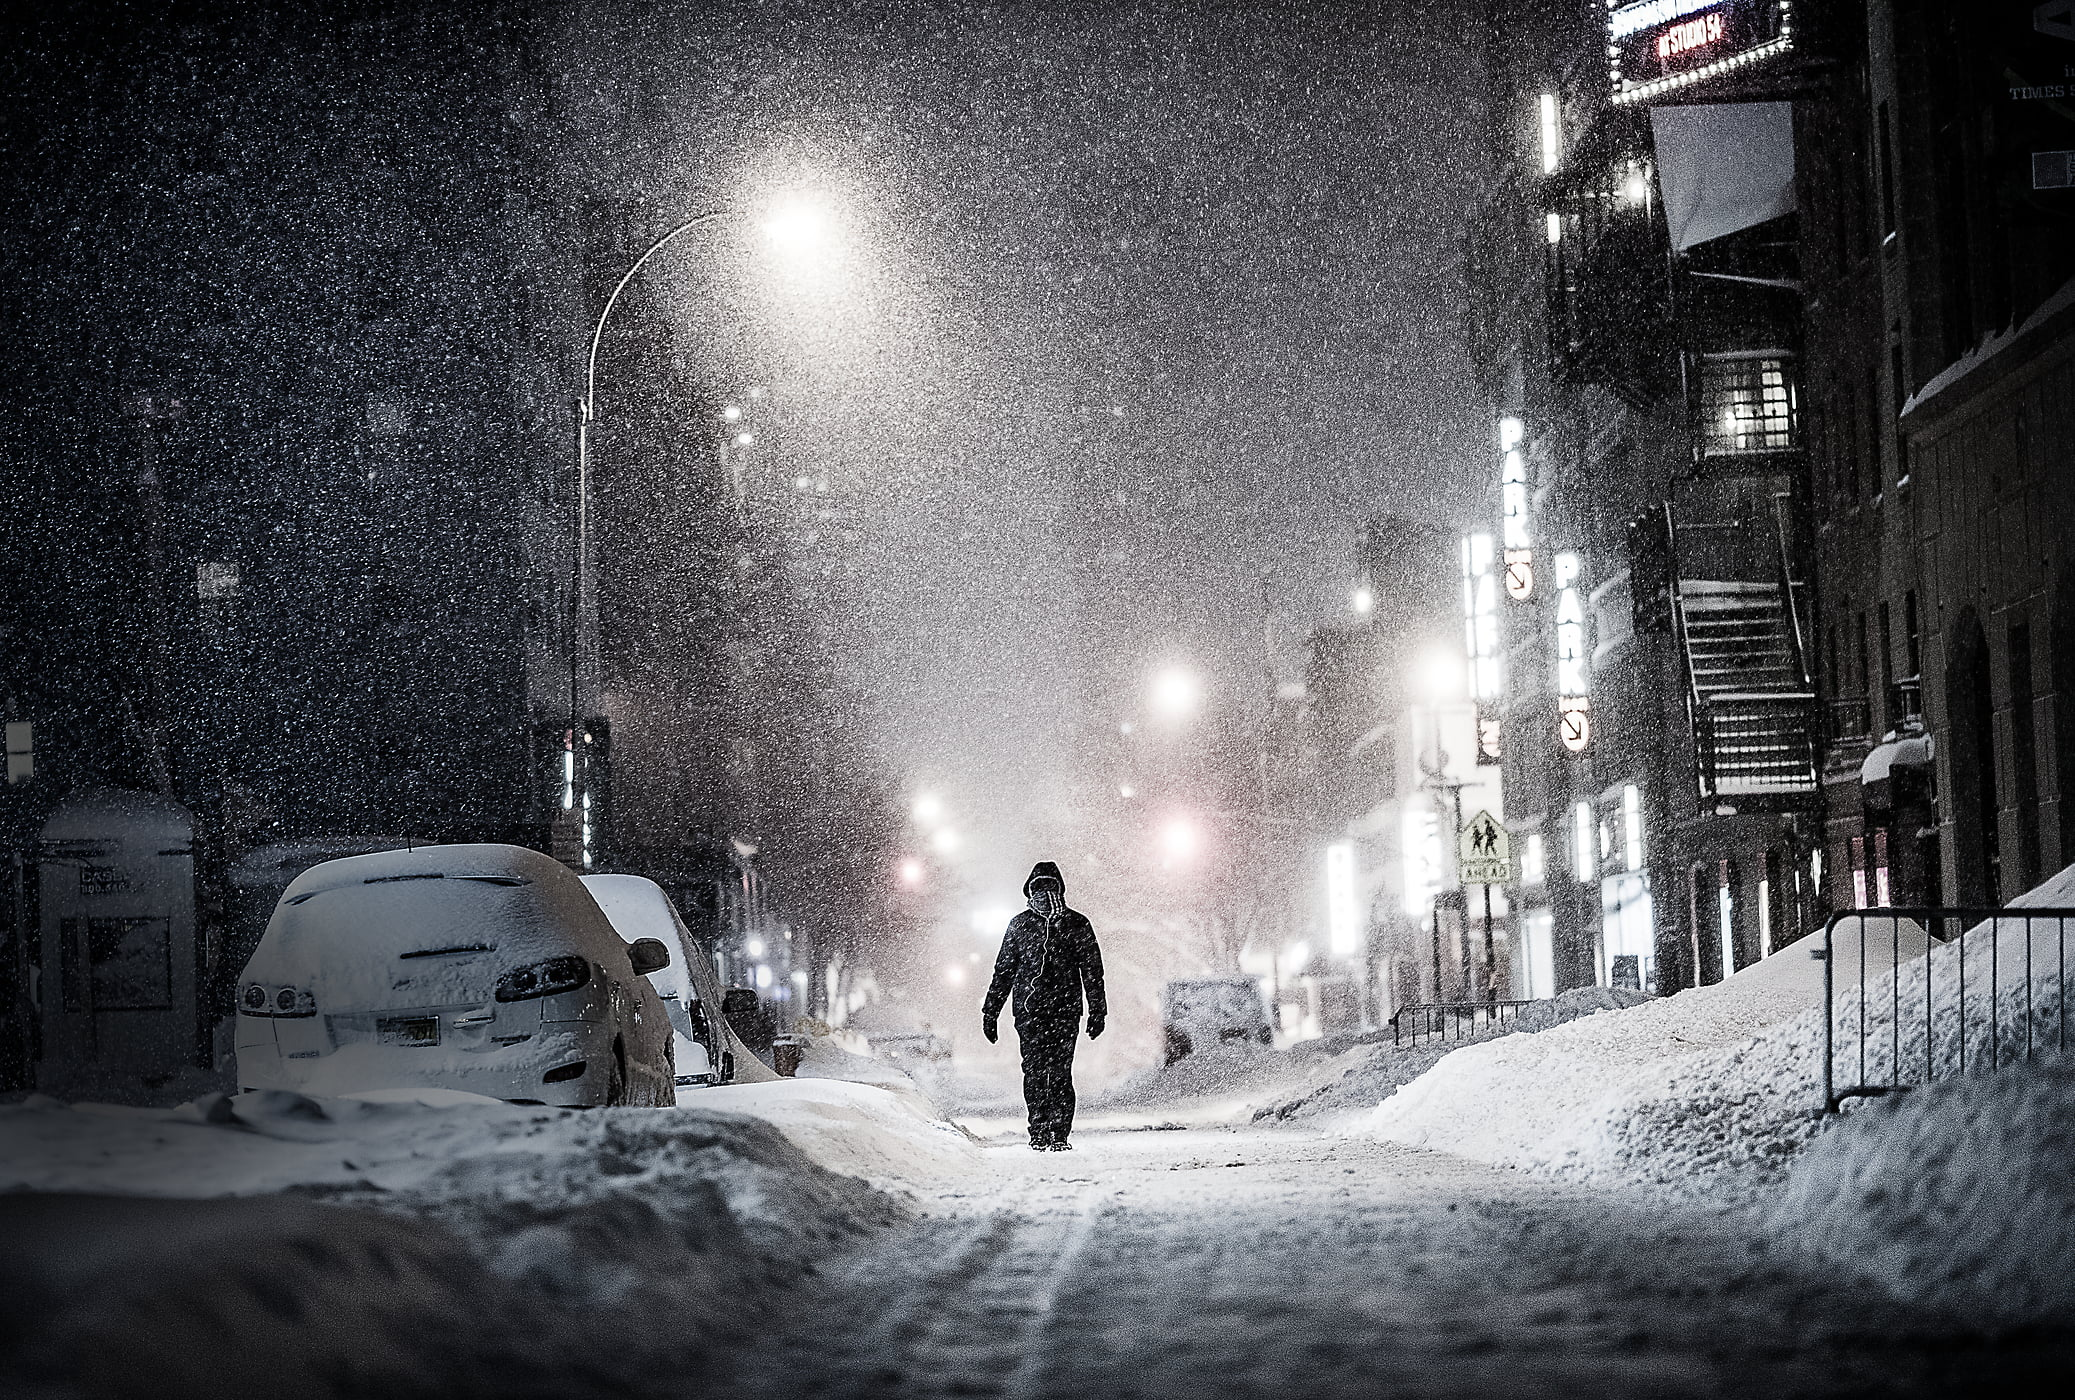 50 megapixels! A very high resolution VAST photo of a lonely person walking down an alley during the 2016 winter snow blizzard at night in New York City; created by Dan Piech